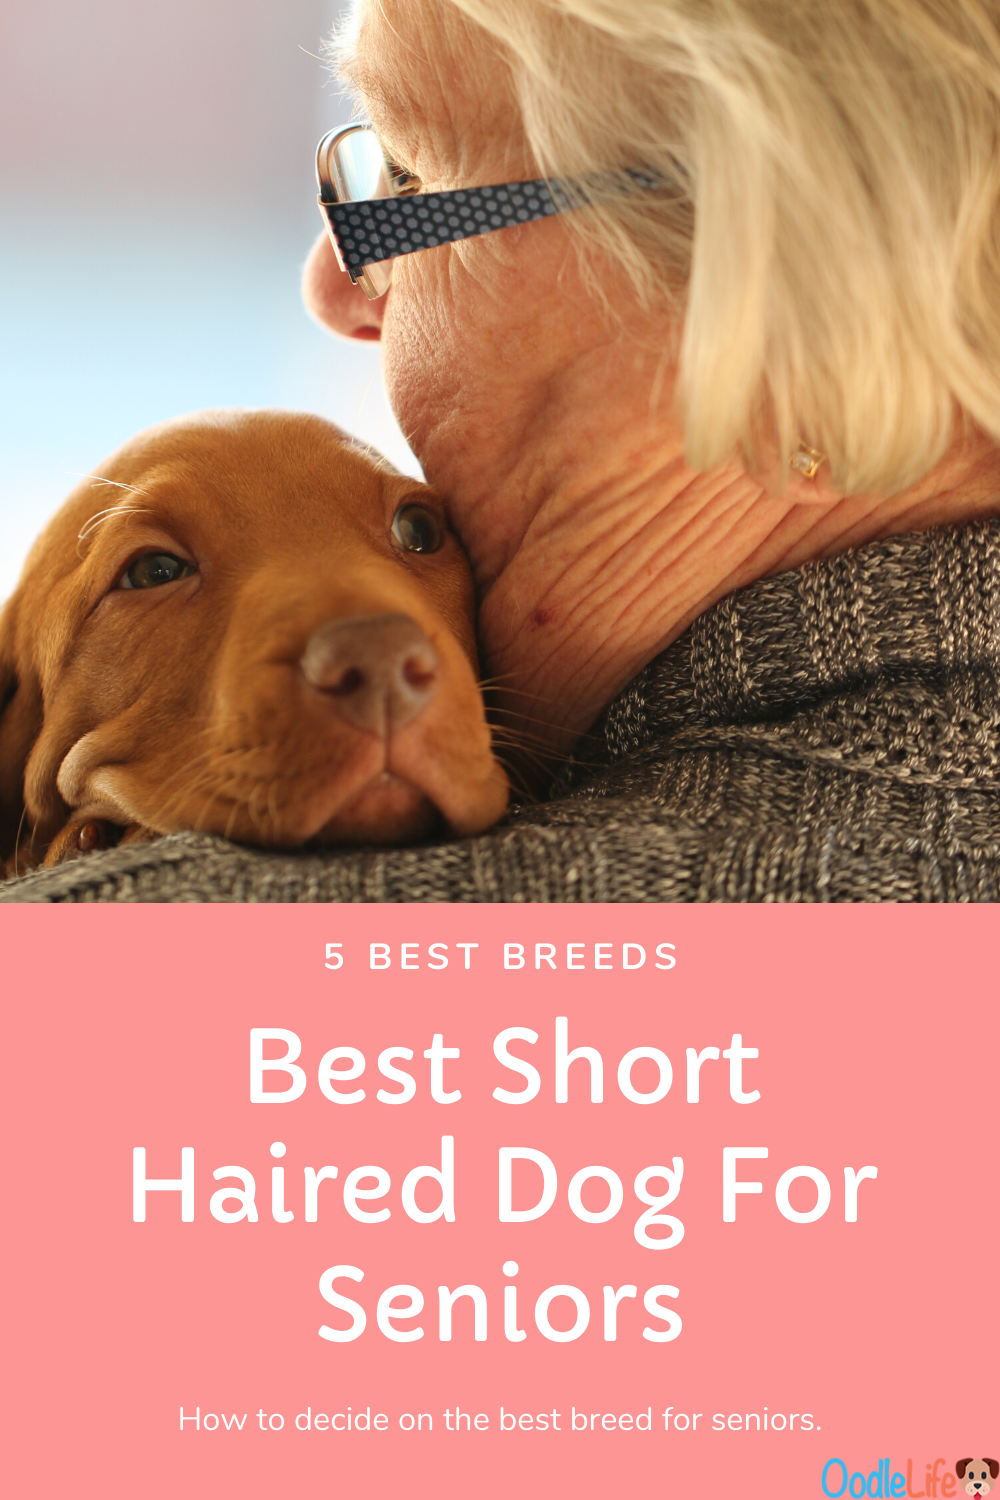 5 Best Small Short Haired Dog For Seniors Oodle Dogs In 2020 Short Haired Dogs Dog Breeds Medium Short Dog